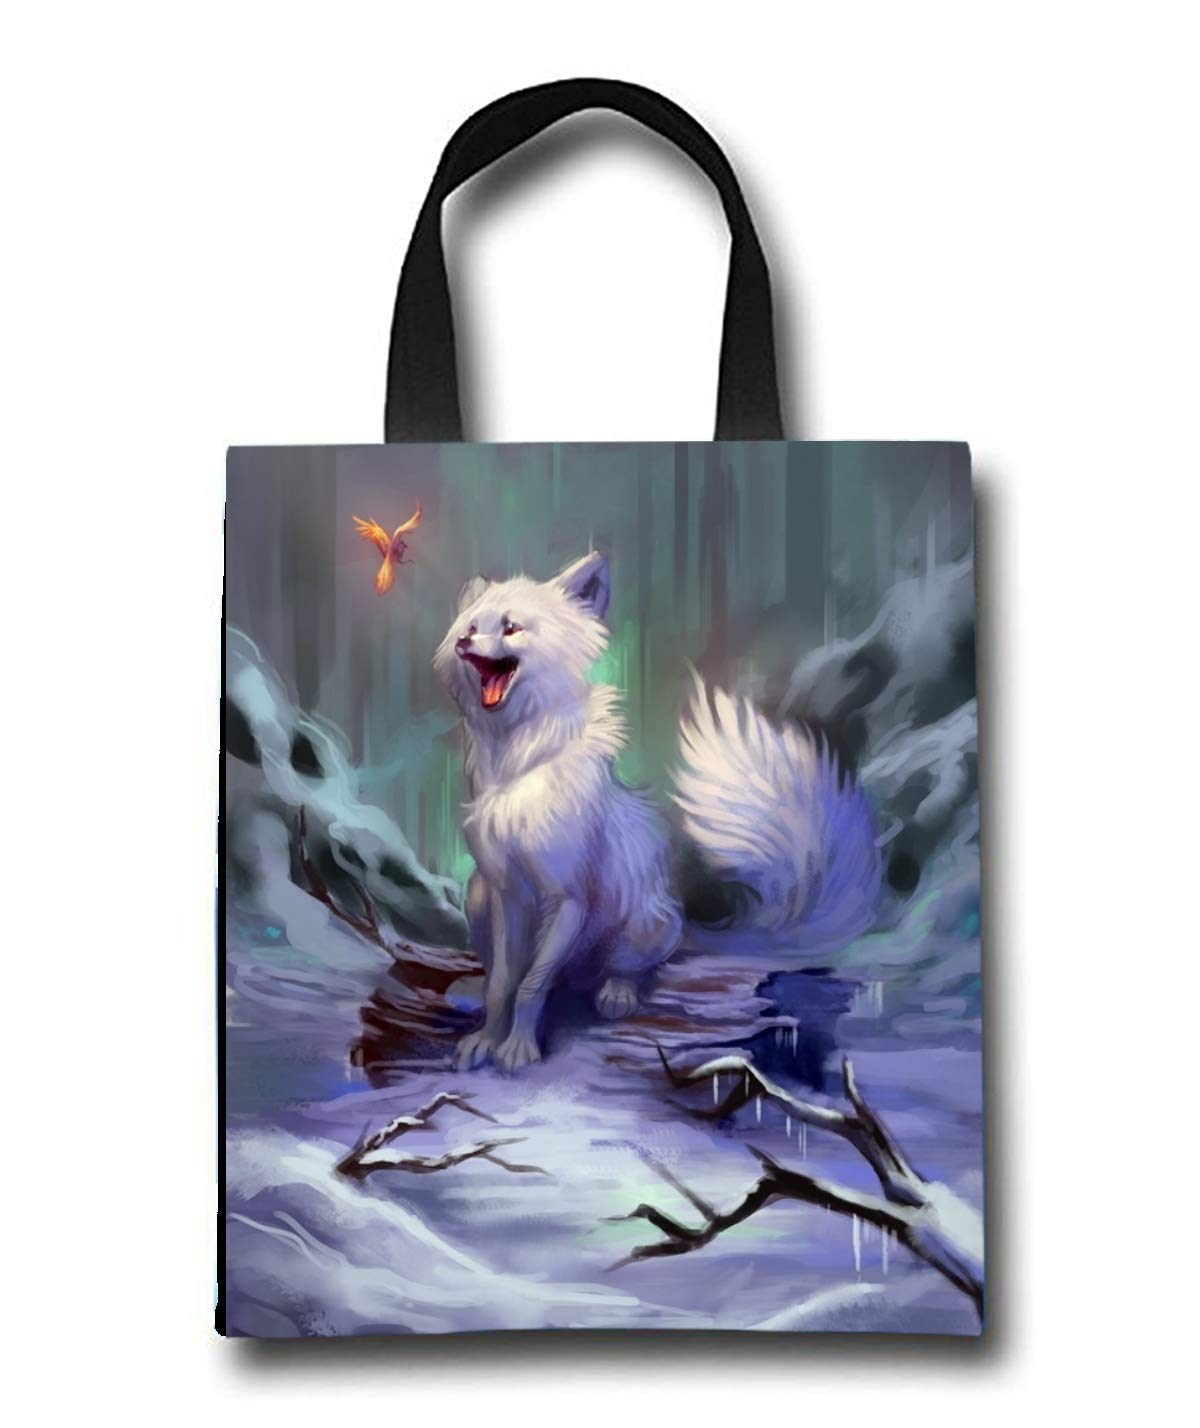 Cartoon Fox Beach Tote Bag - Toy Tote Bag - Large Lightweight Market, Grocery & Picnic